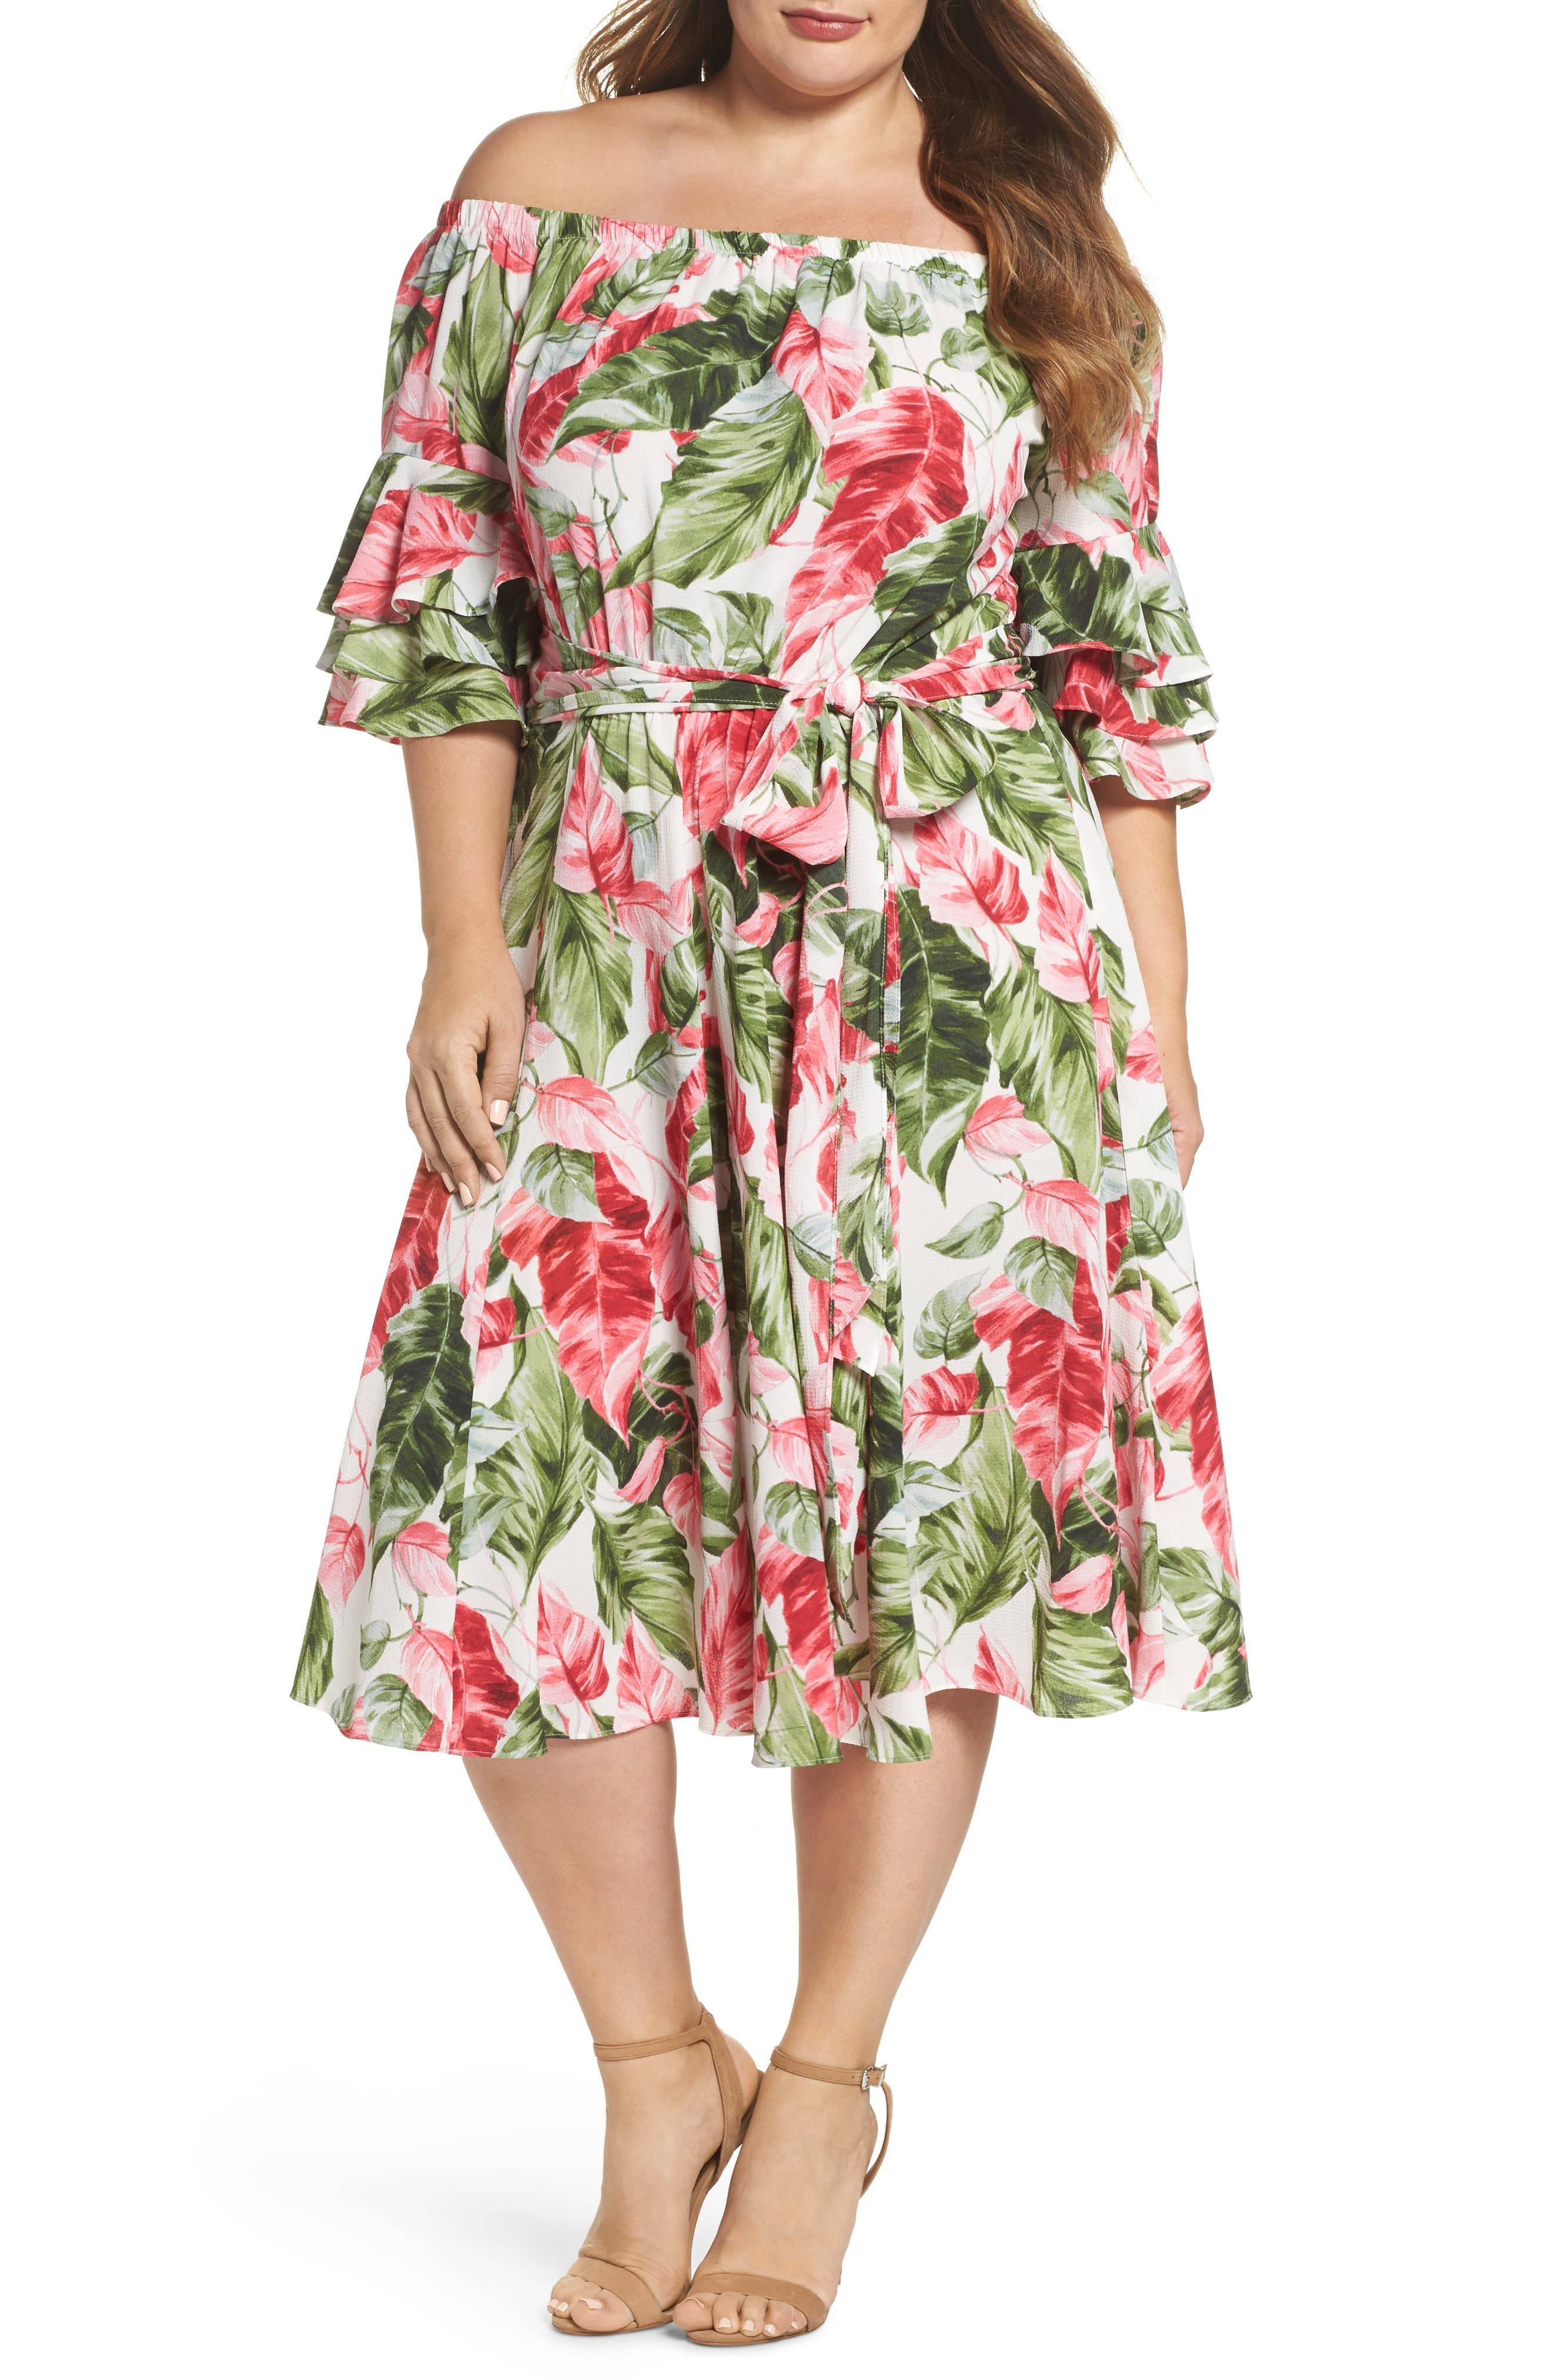 Off the Shoulder Floral Midi Dress,                             Main thumbnail 1, color,                             650